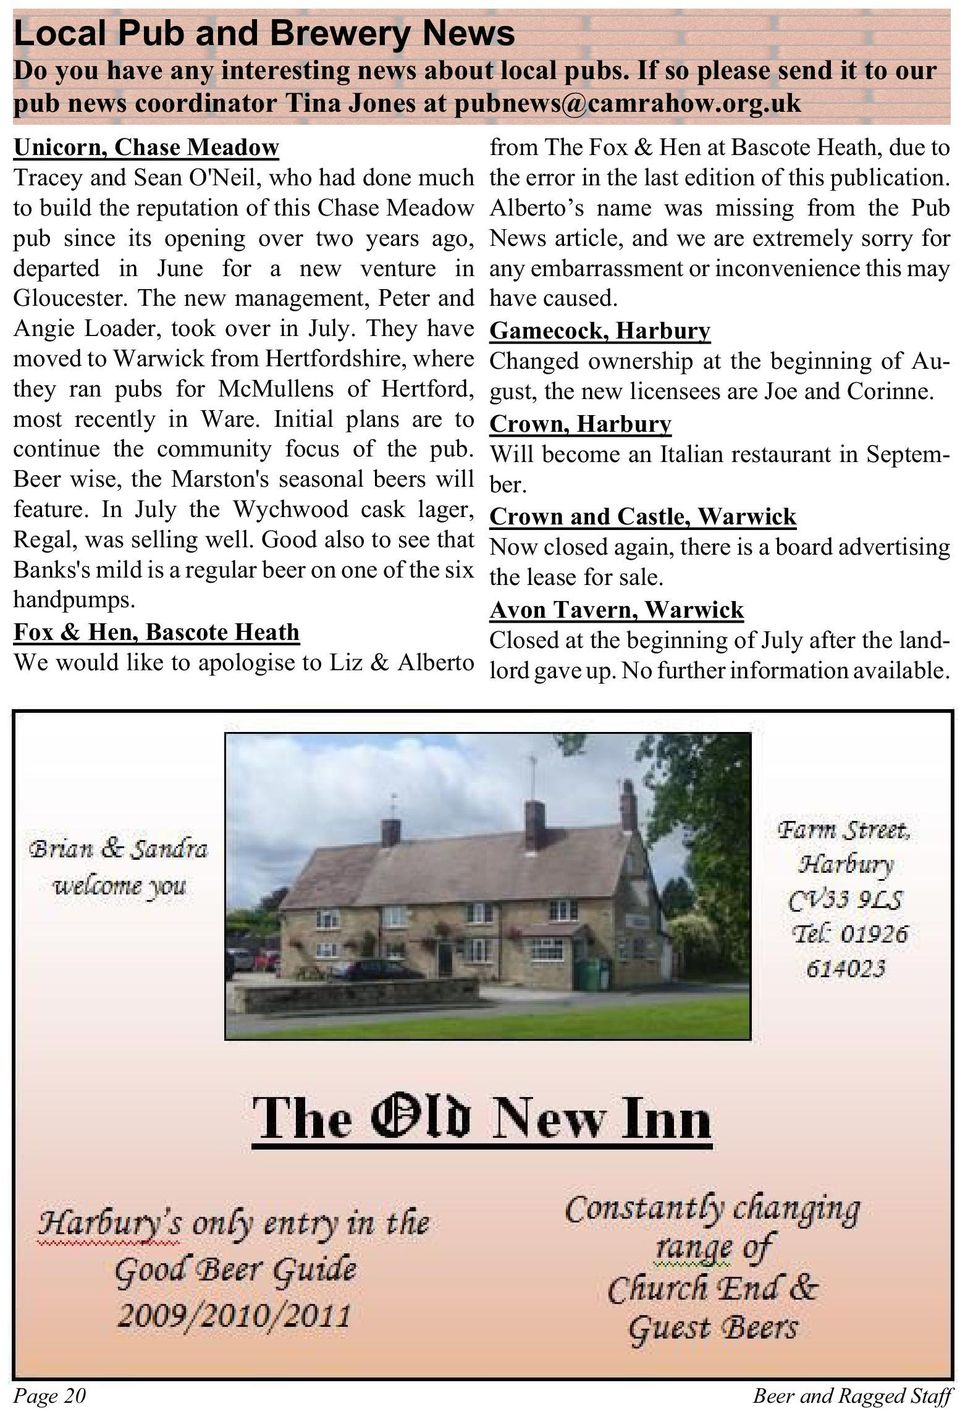 Gloucester. The new management, Peter and Angie Loader, took over in July. They have moved to Warwick from Hertfordshire, where they ran pubs for McMullens of Hertford, most recently in Ware.